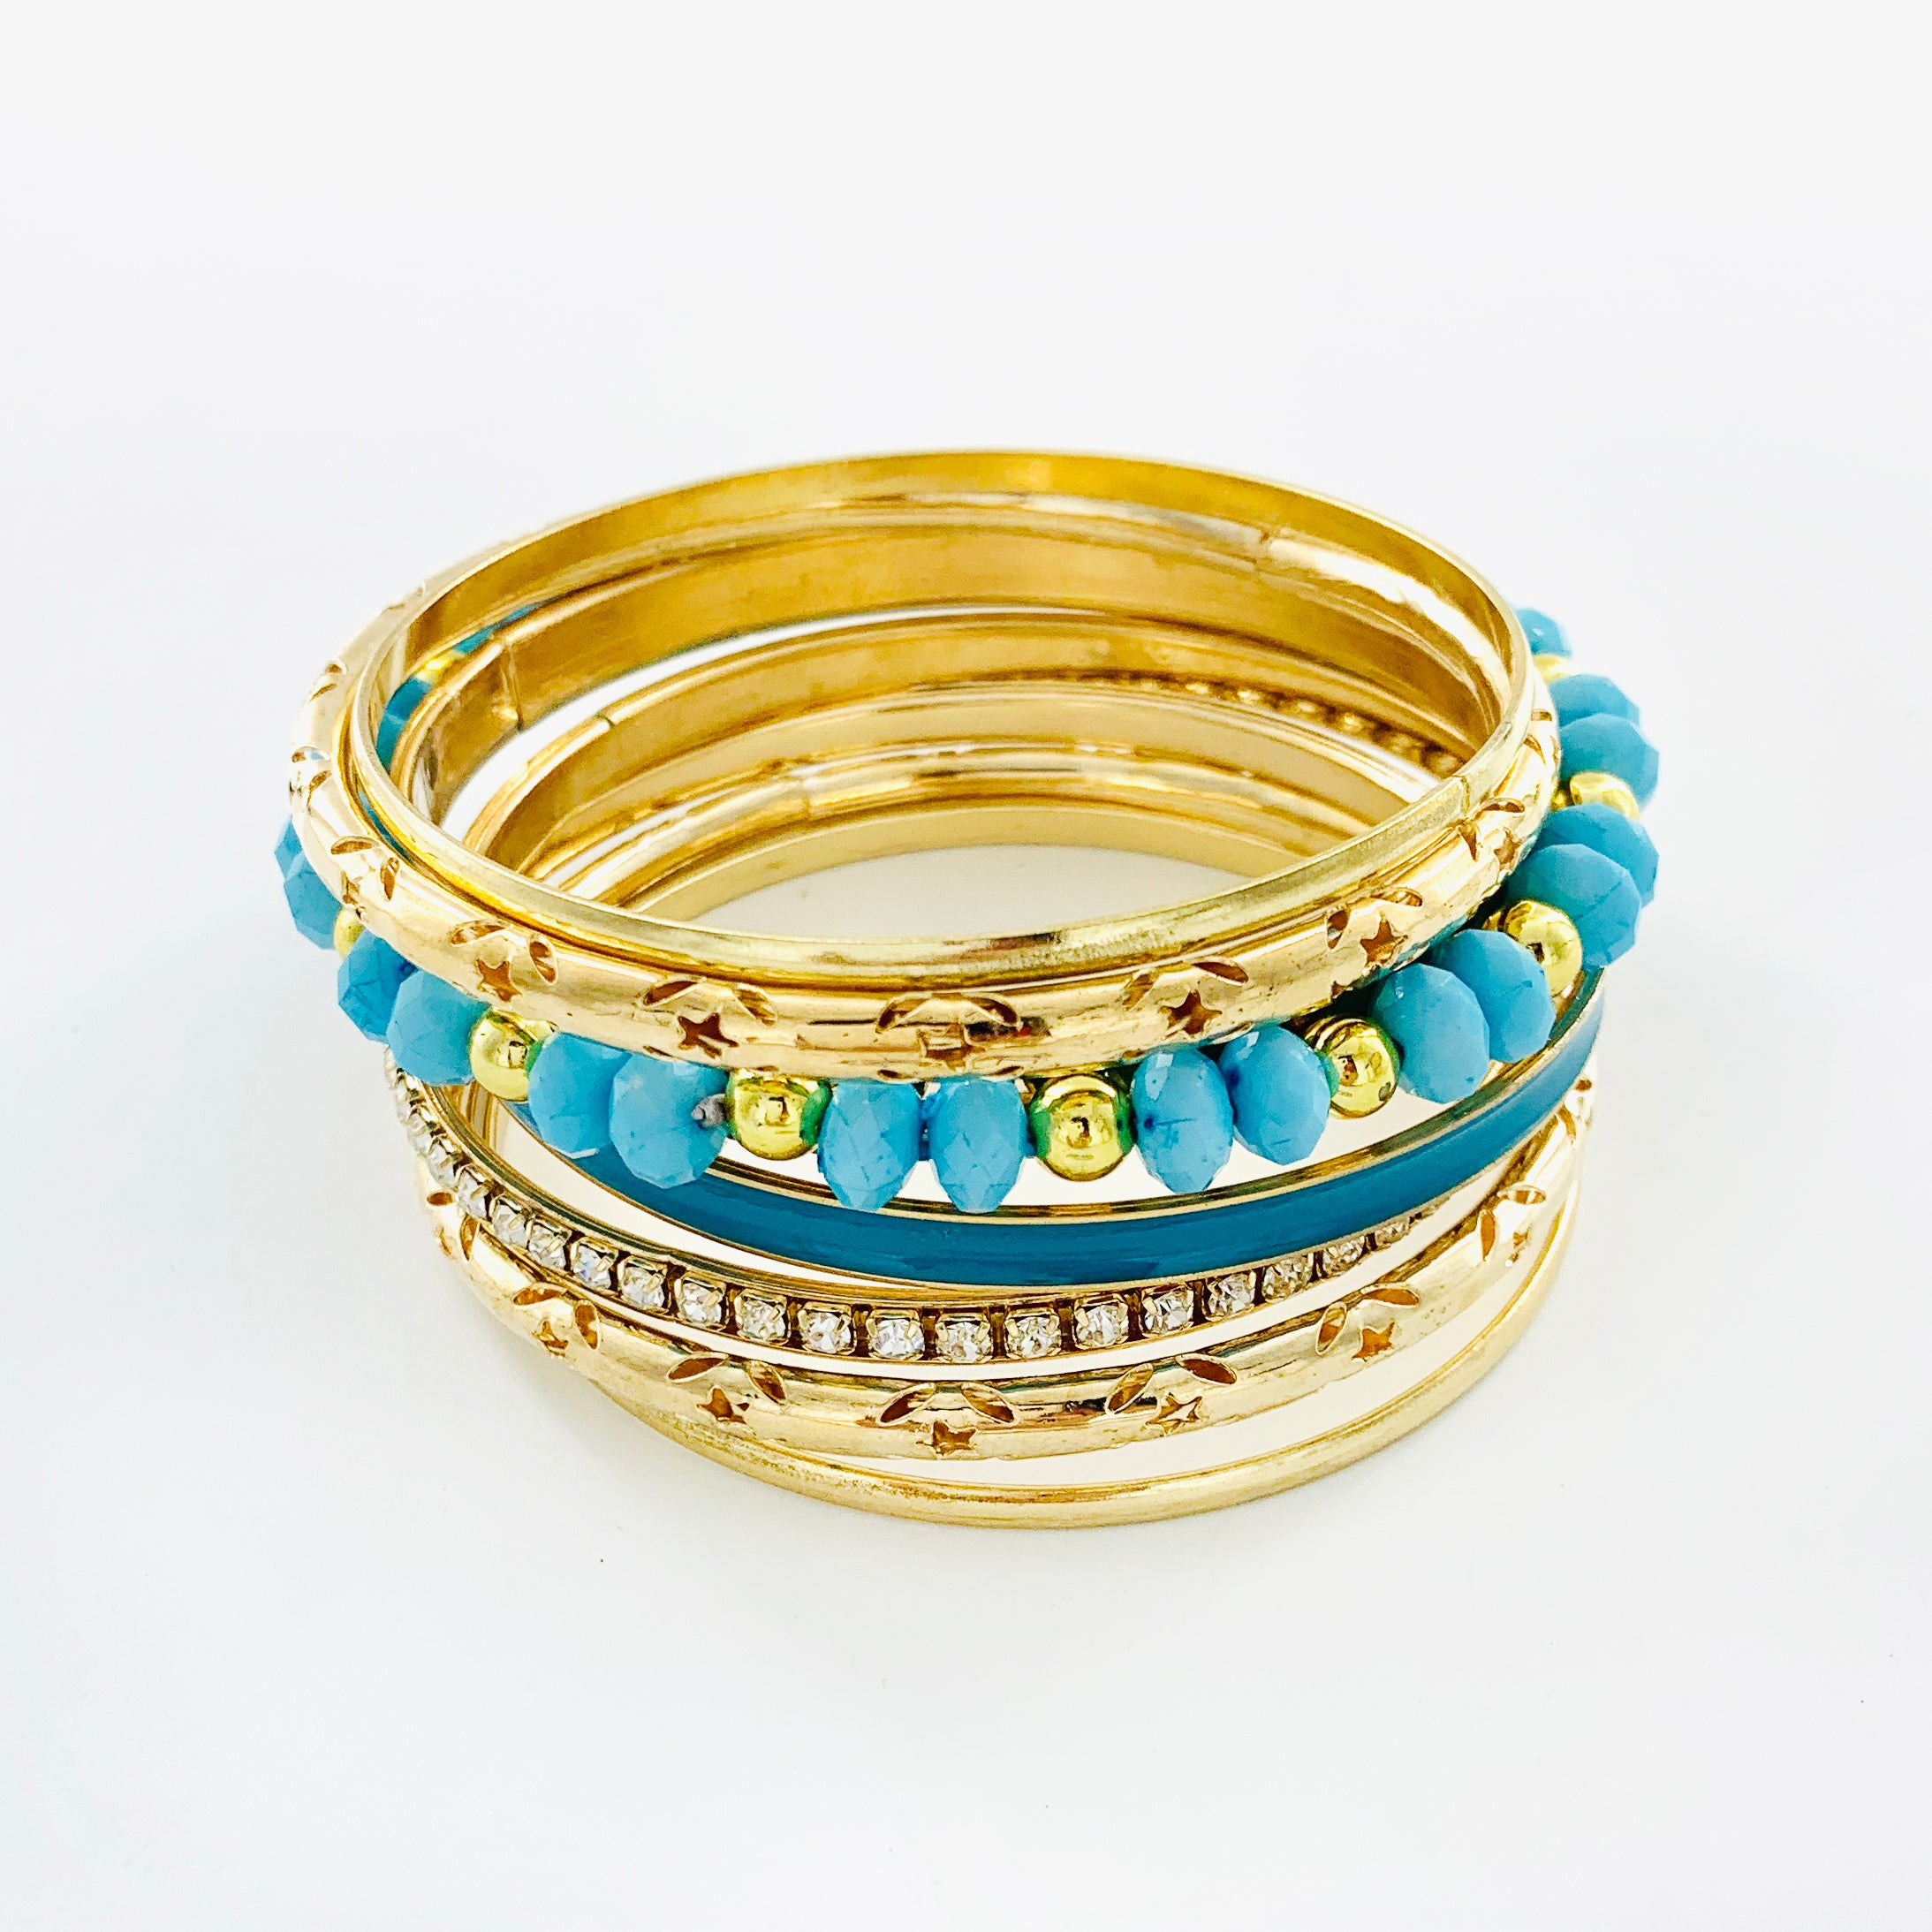 Gold Bangles with Blue beads and Diamante stones